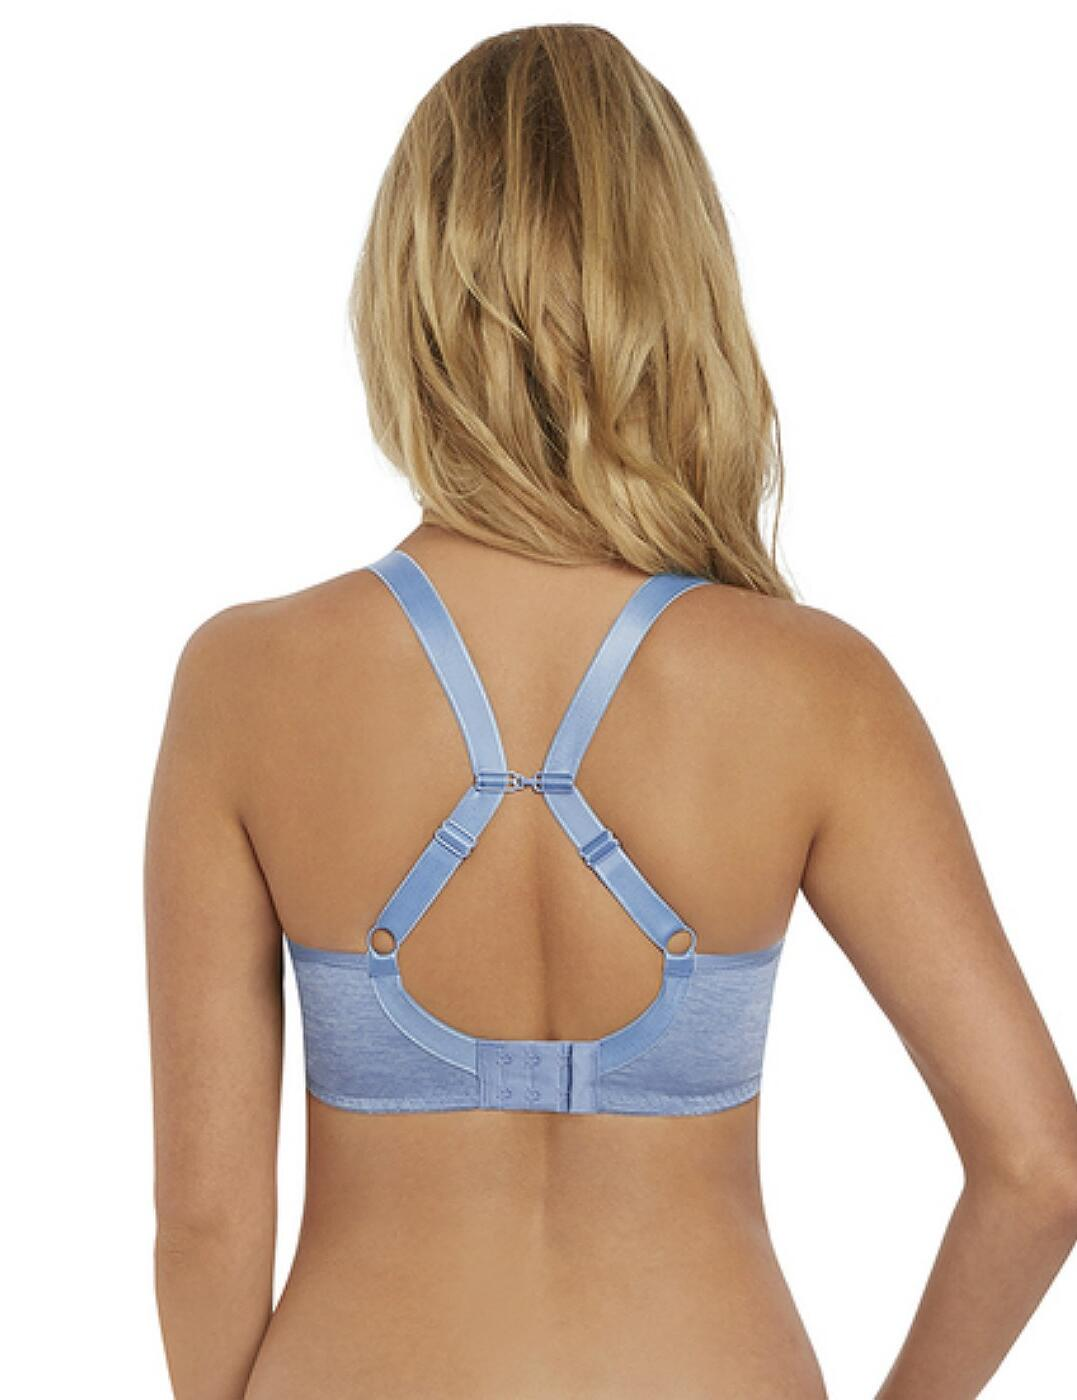 Freya-Deco-Amore-Bra-1891-Underwired-Moulded-Plunge-New-Womens-Lingerie thumbnail 11